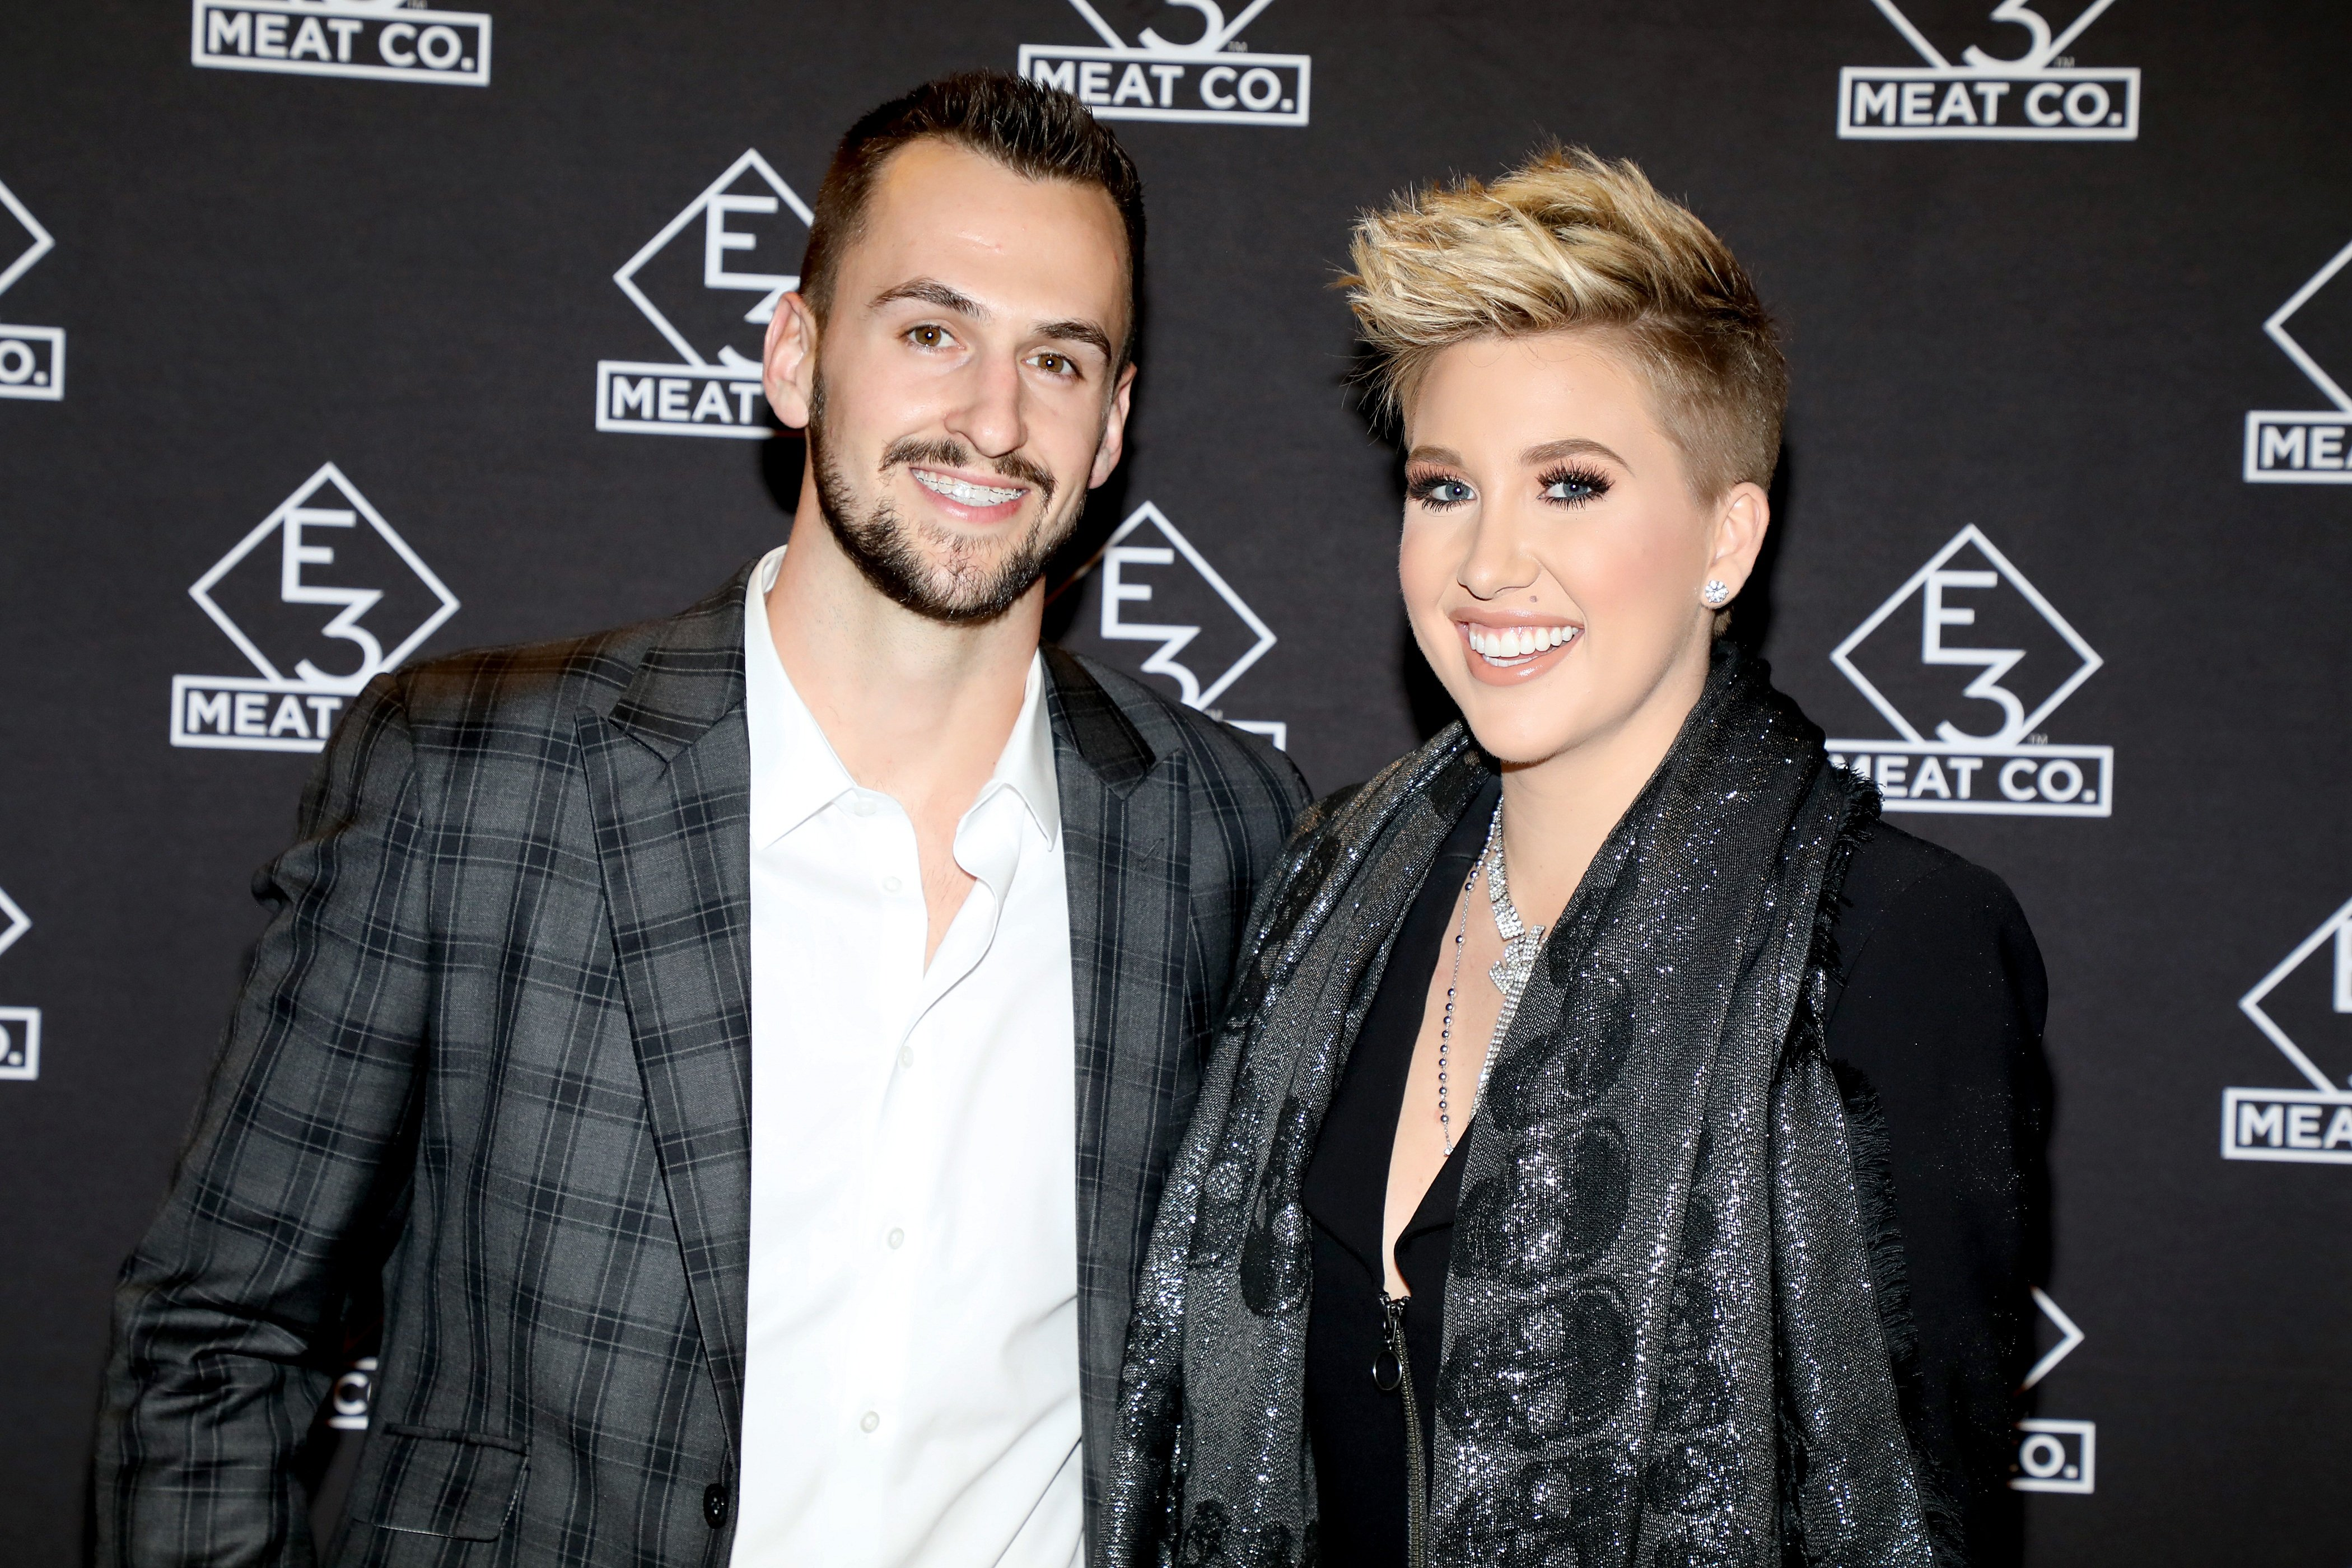 Nic Kerdiles and Savannah Chrisley attend the grand opening of E3 Chophouse Nashville on November 20, 2019. | Photo: Getty Images